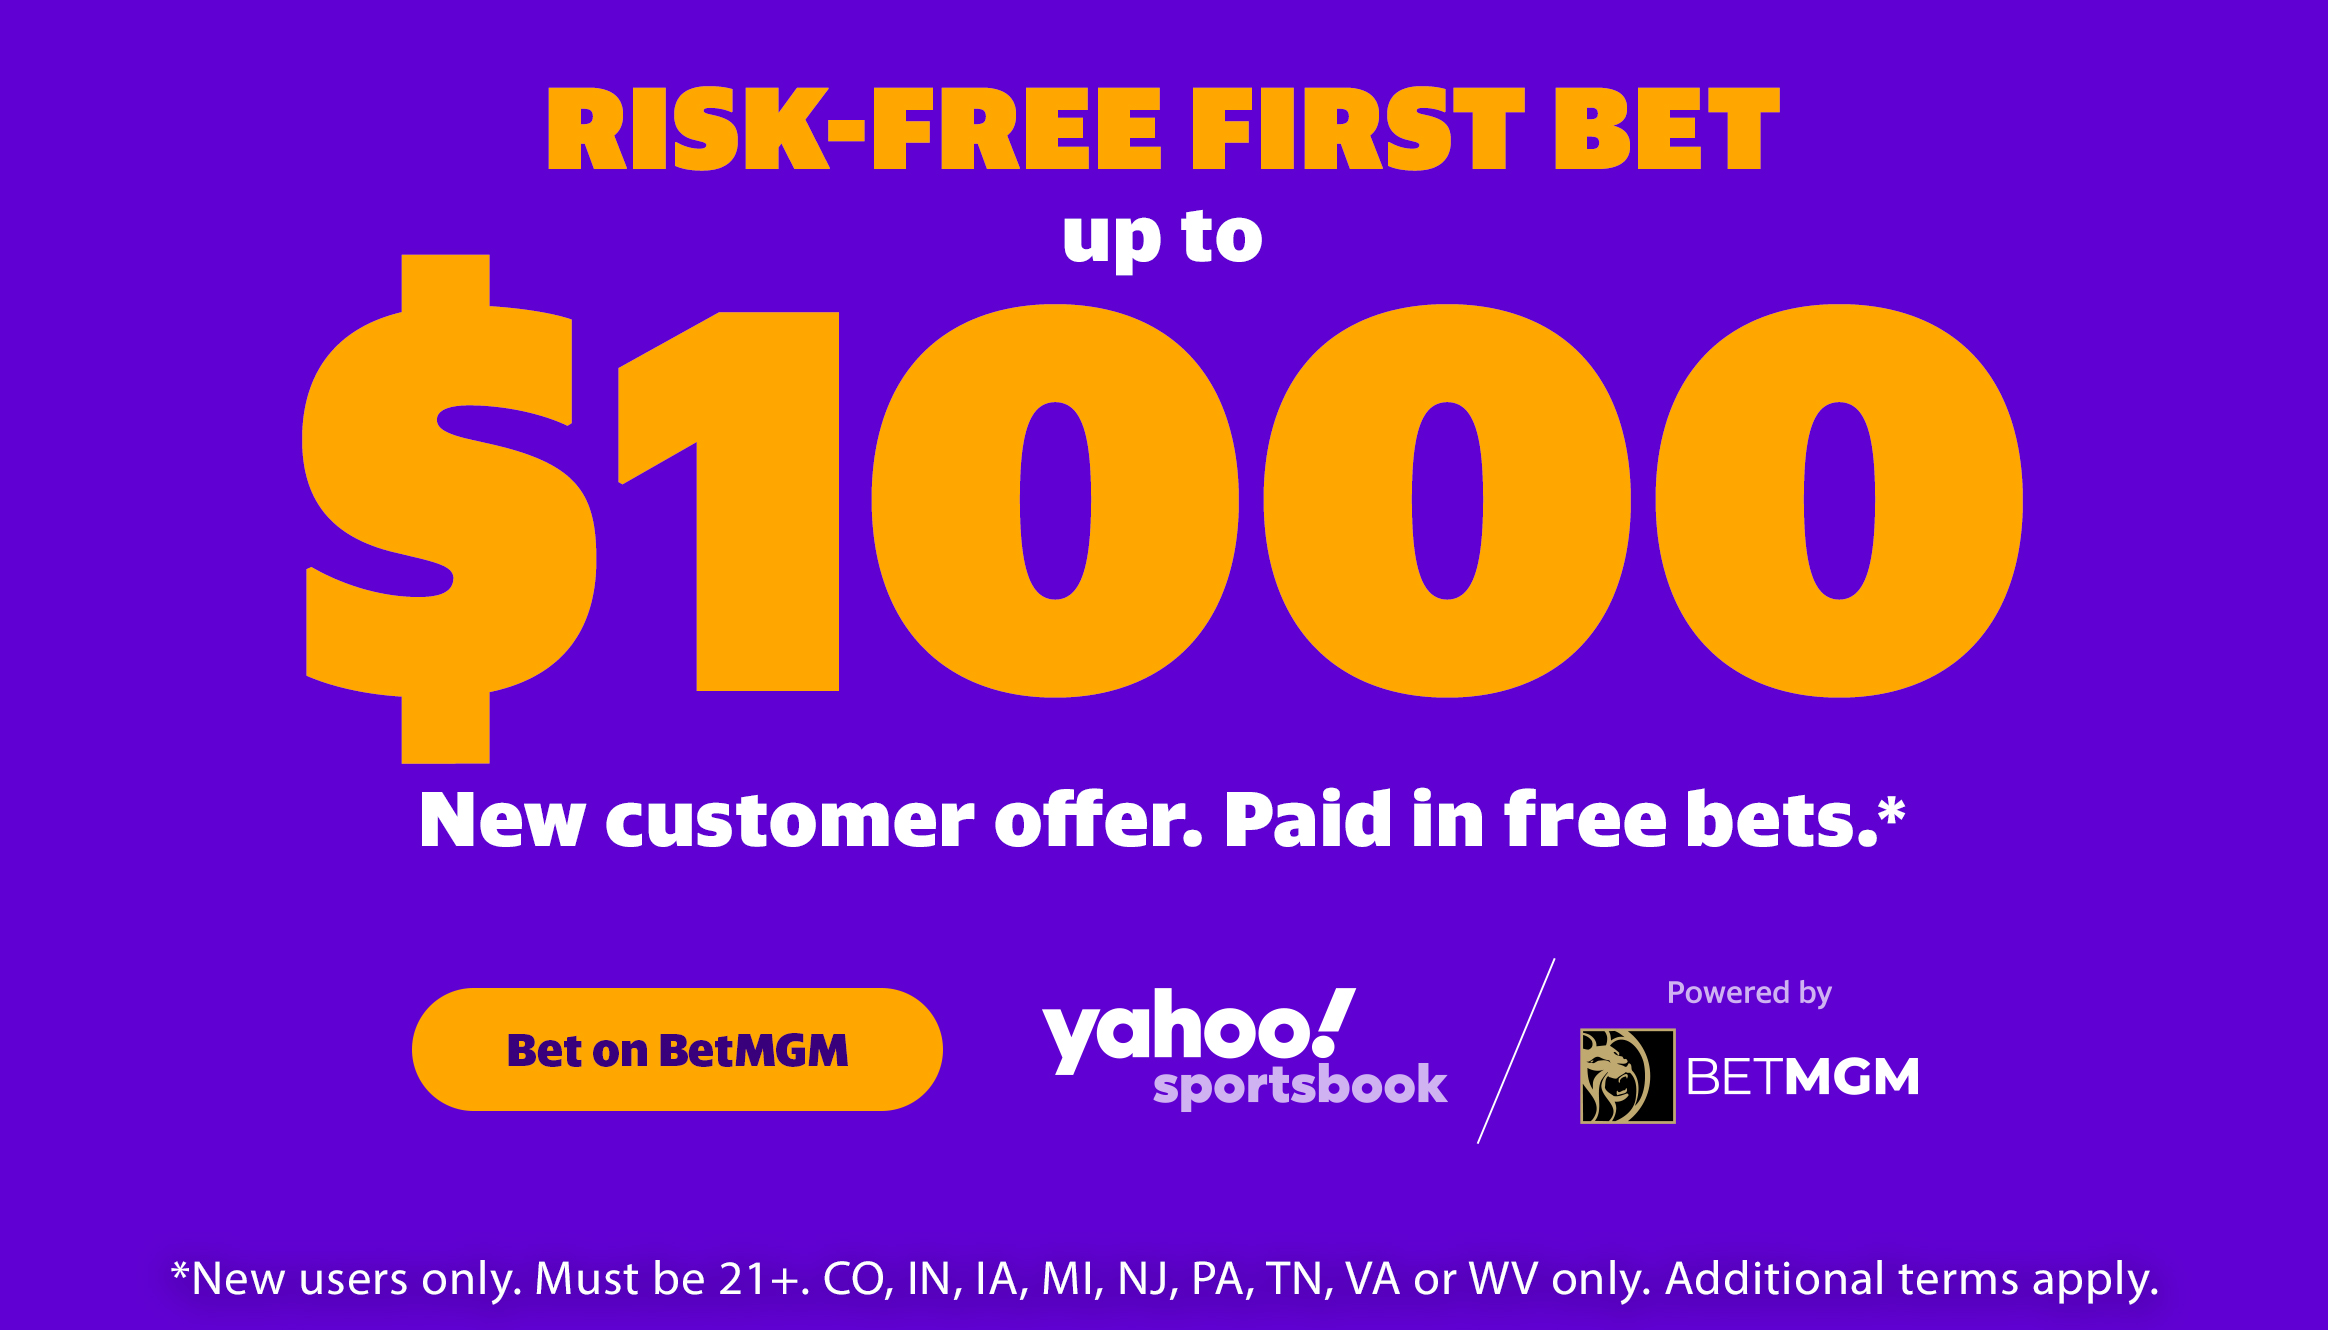 Risk-Free First Bet up to $1,000